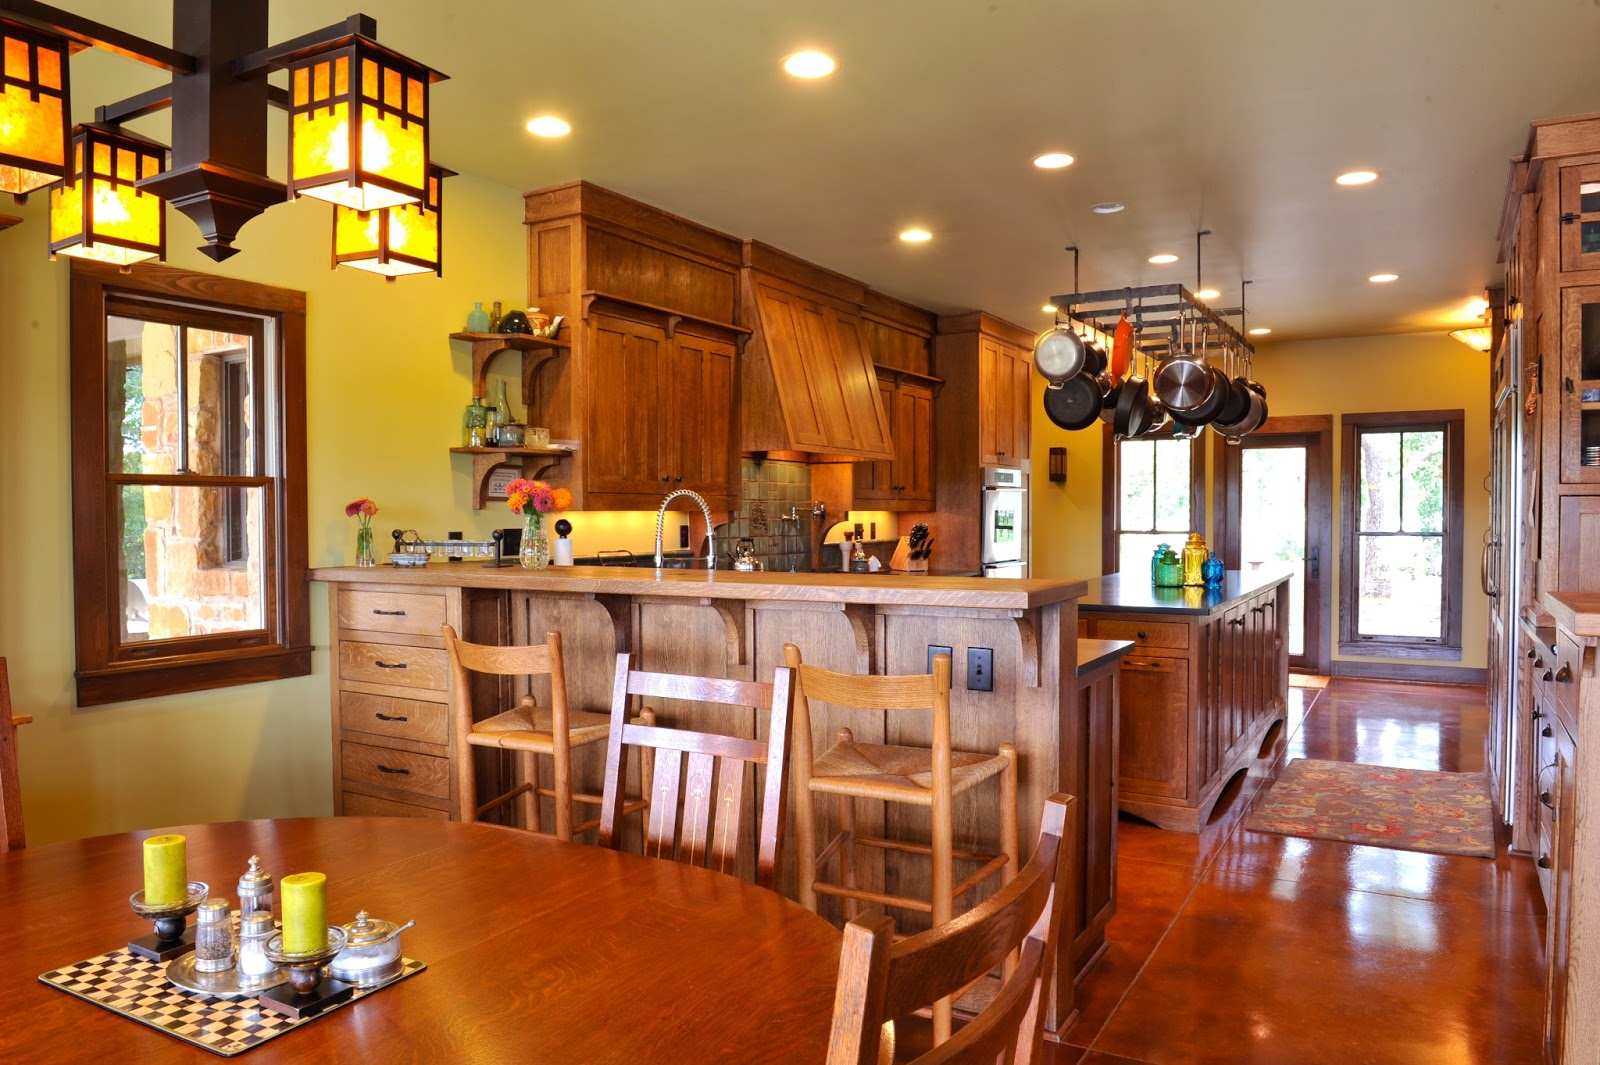 Arts and crafts dining room lighting - Arts And Crafts Style Home Cordillera Ranch